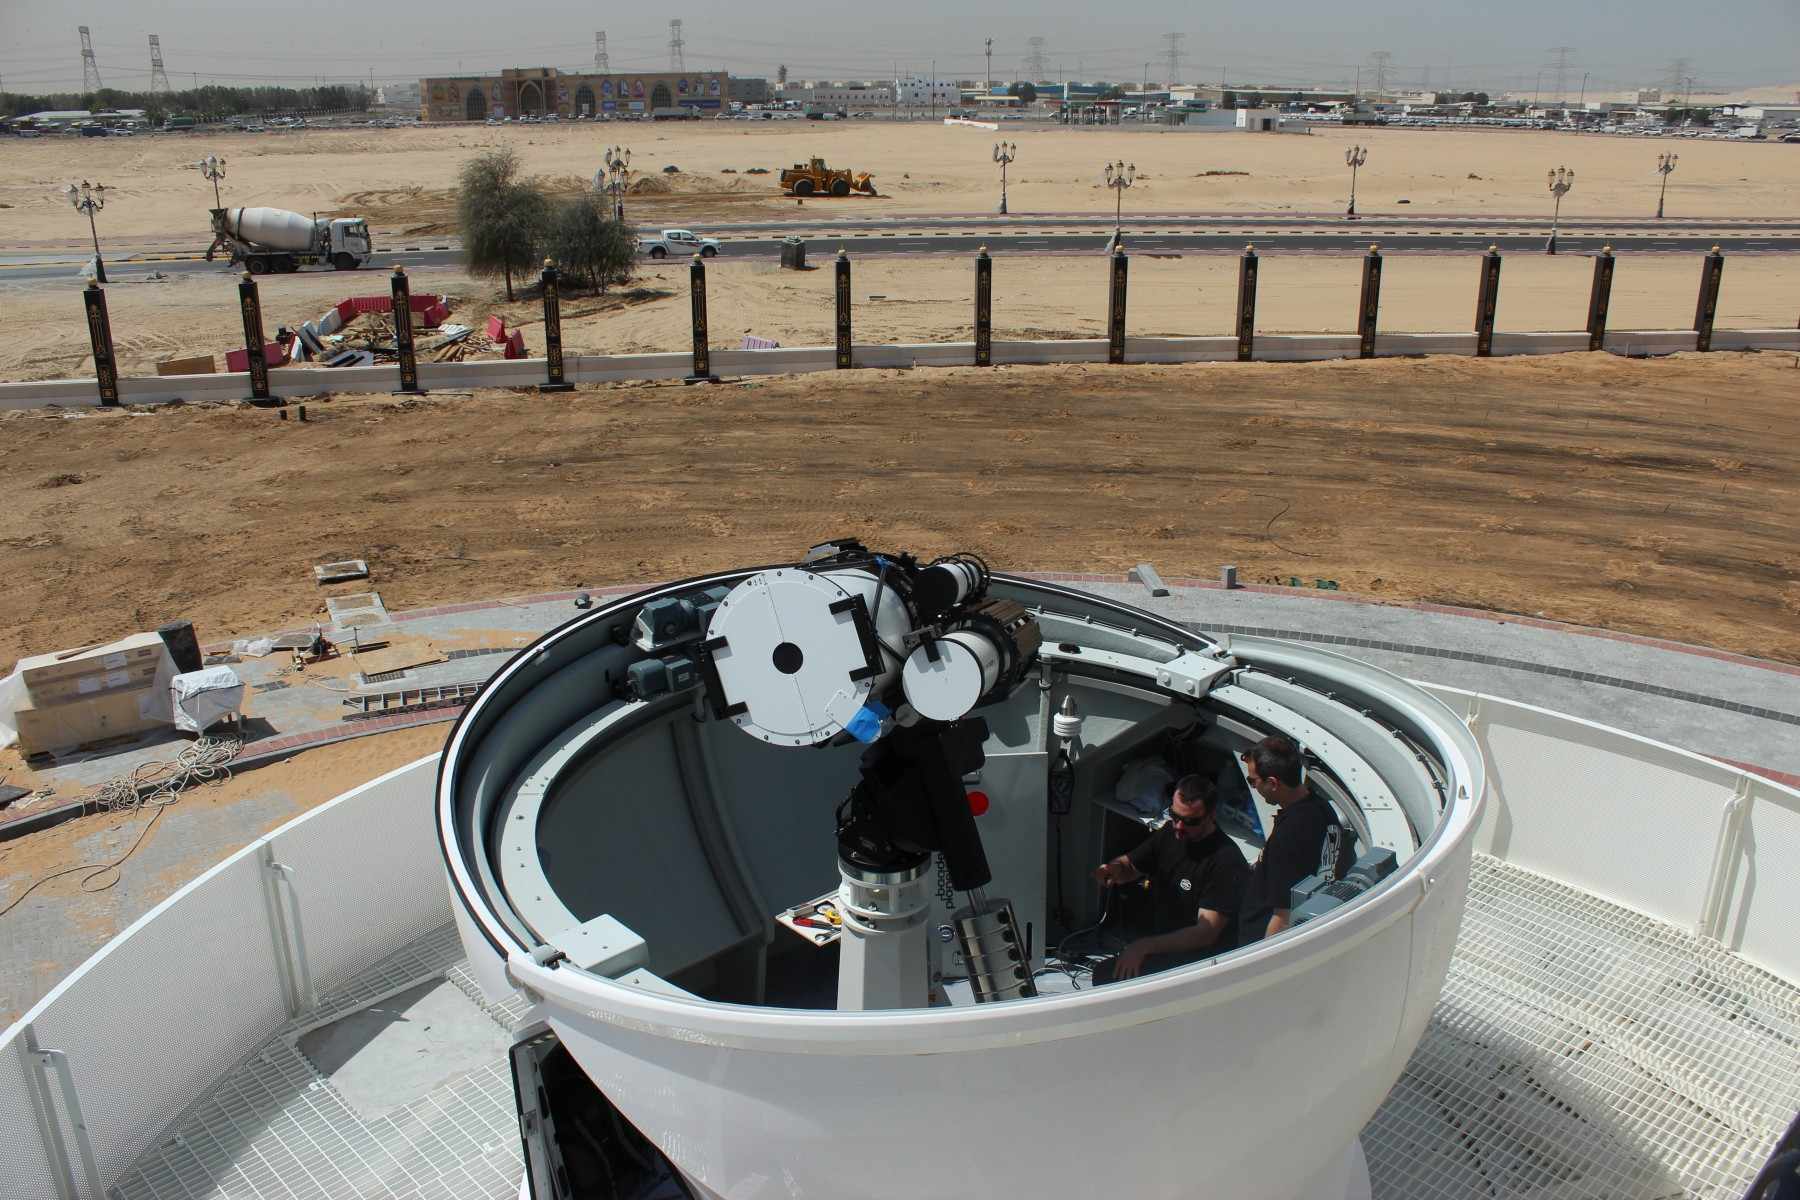 Application image: PlaneWave CDK 17, in Sharjah, UAE